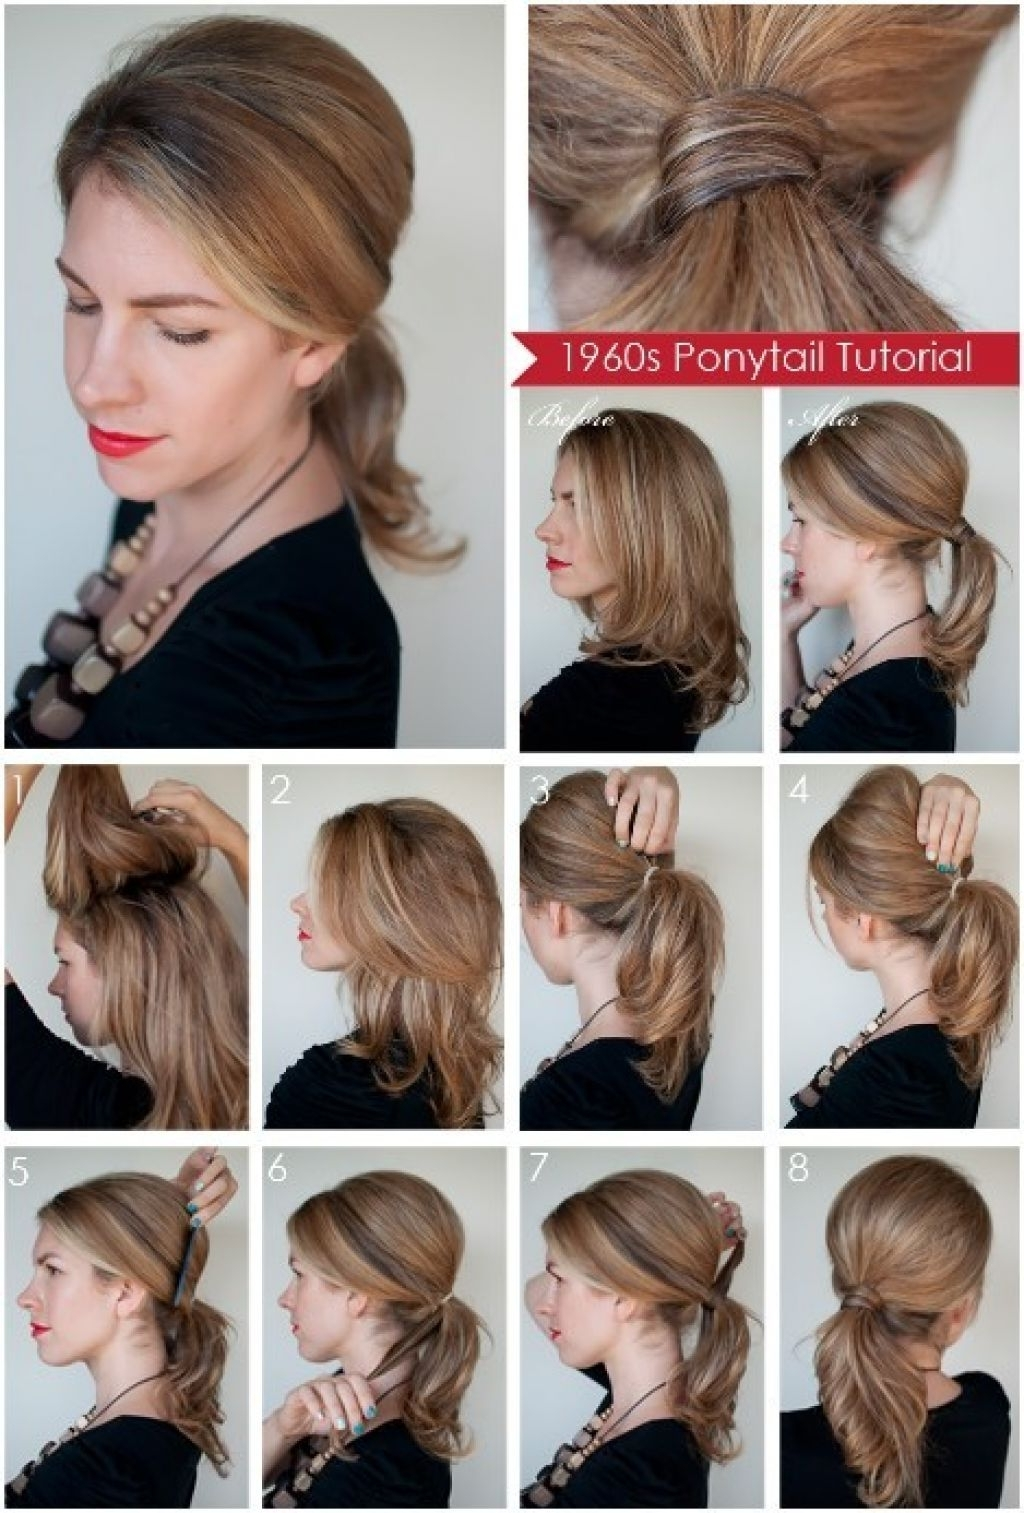 Diy Ponytail Hairstyles For Medium Long Hair Within Most Current Ponytail Hairstyles For Layered Hair (Gallery 6 of 20)